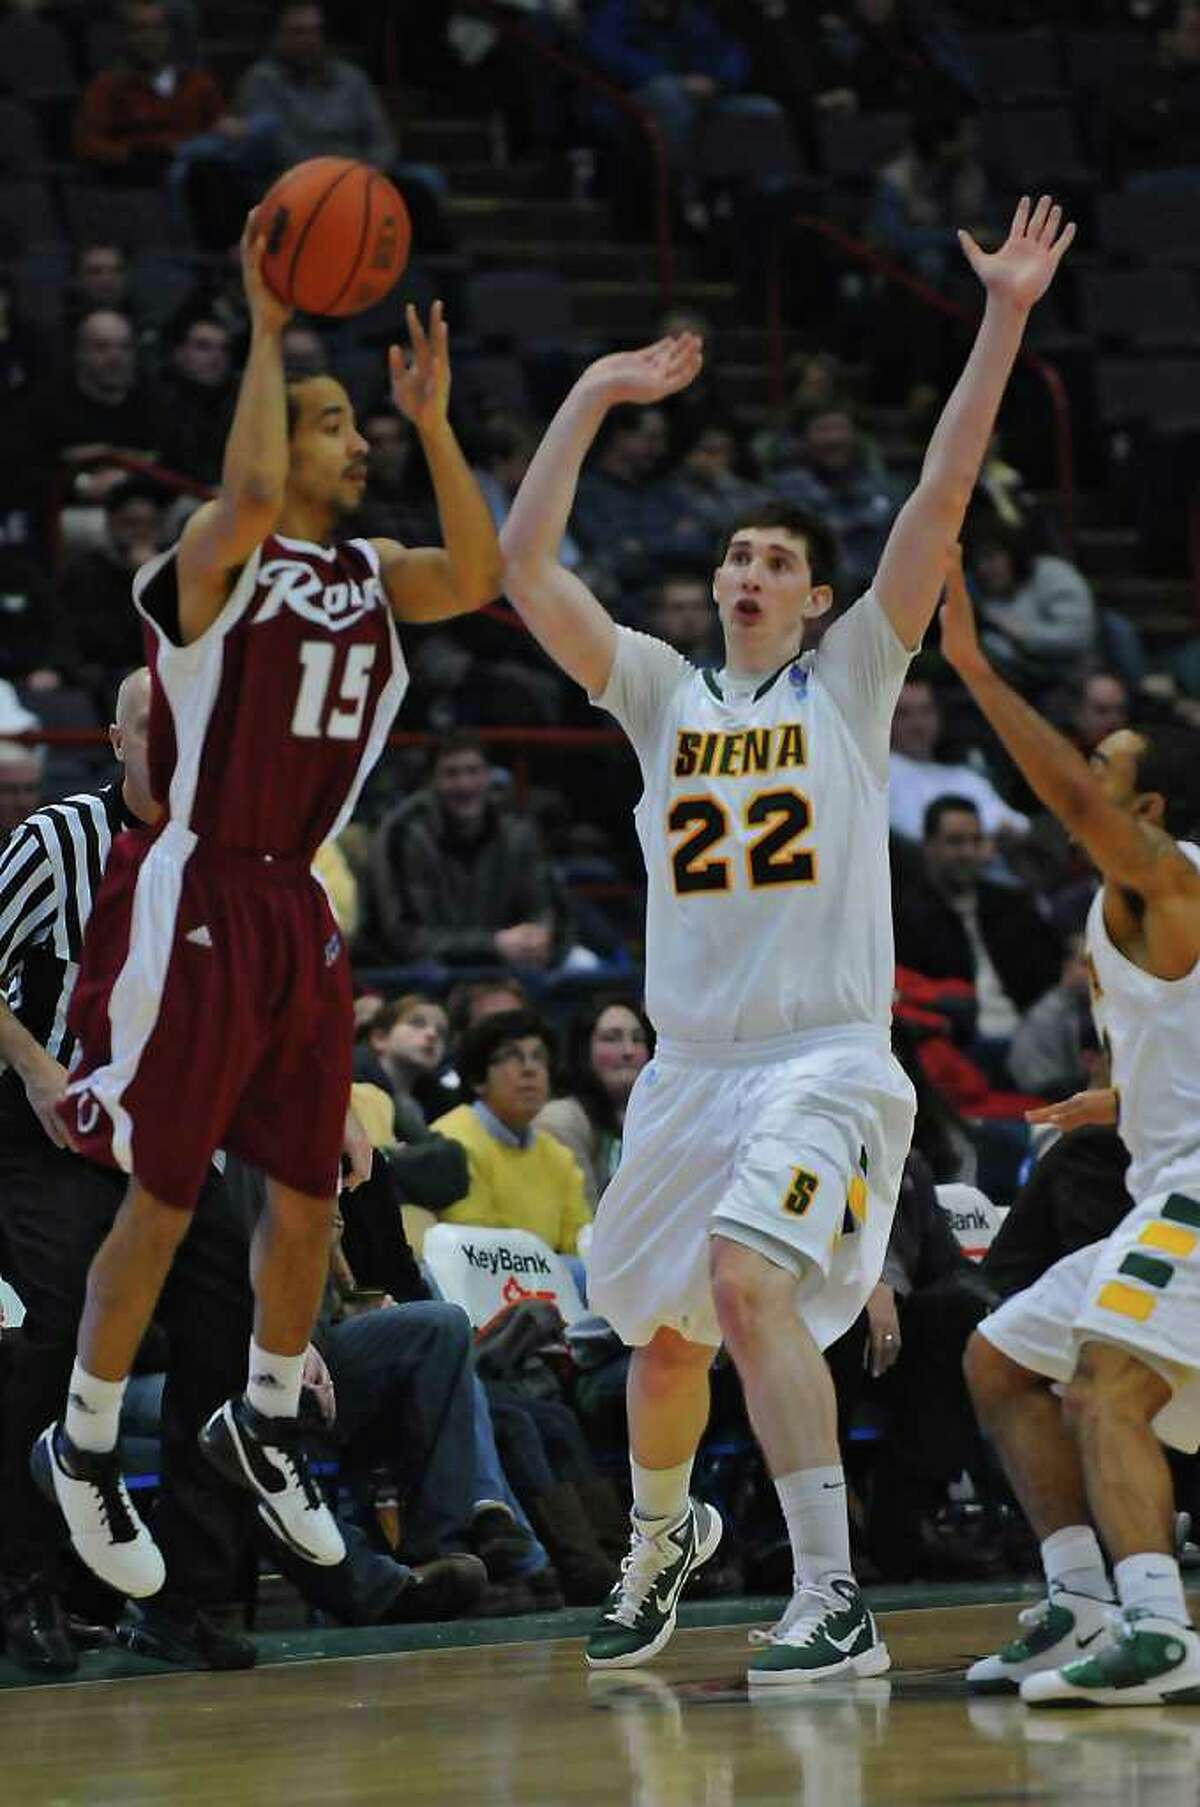 Siena's Ryan Rossiter, 22, defends Rider's Justin Robinson near the end of the second half of Siena's 68-60 loss to Rider at the Times Union Center in Albany, NY, on Monday January 24, 2011. ( Philip Kamrass / Times Union )